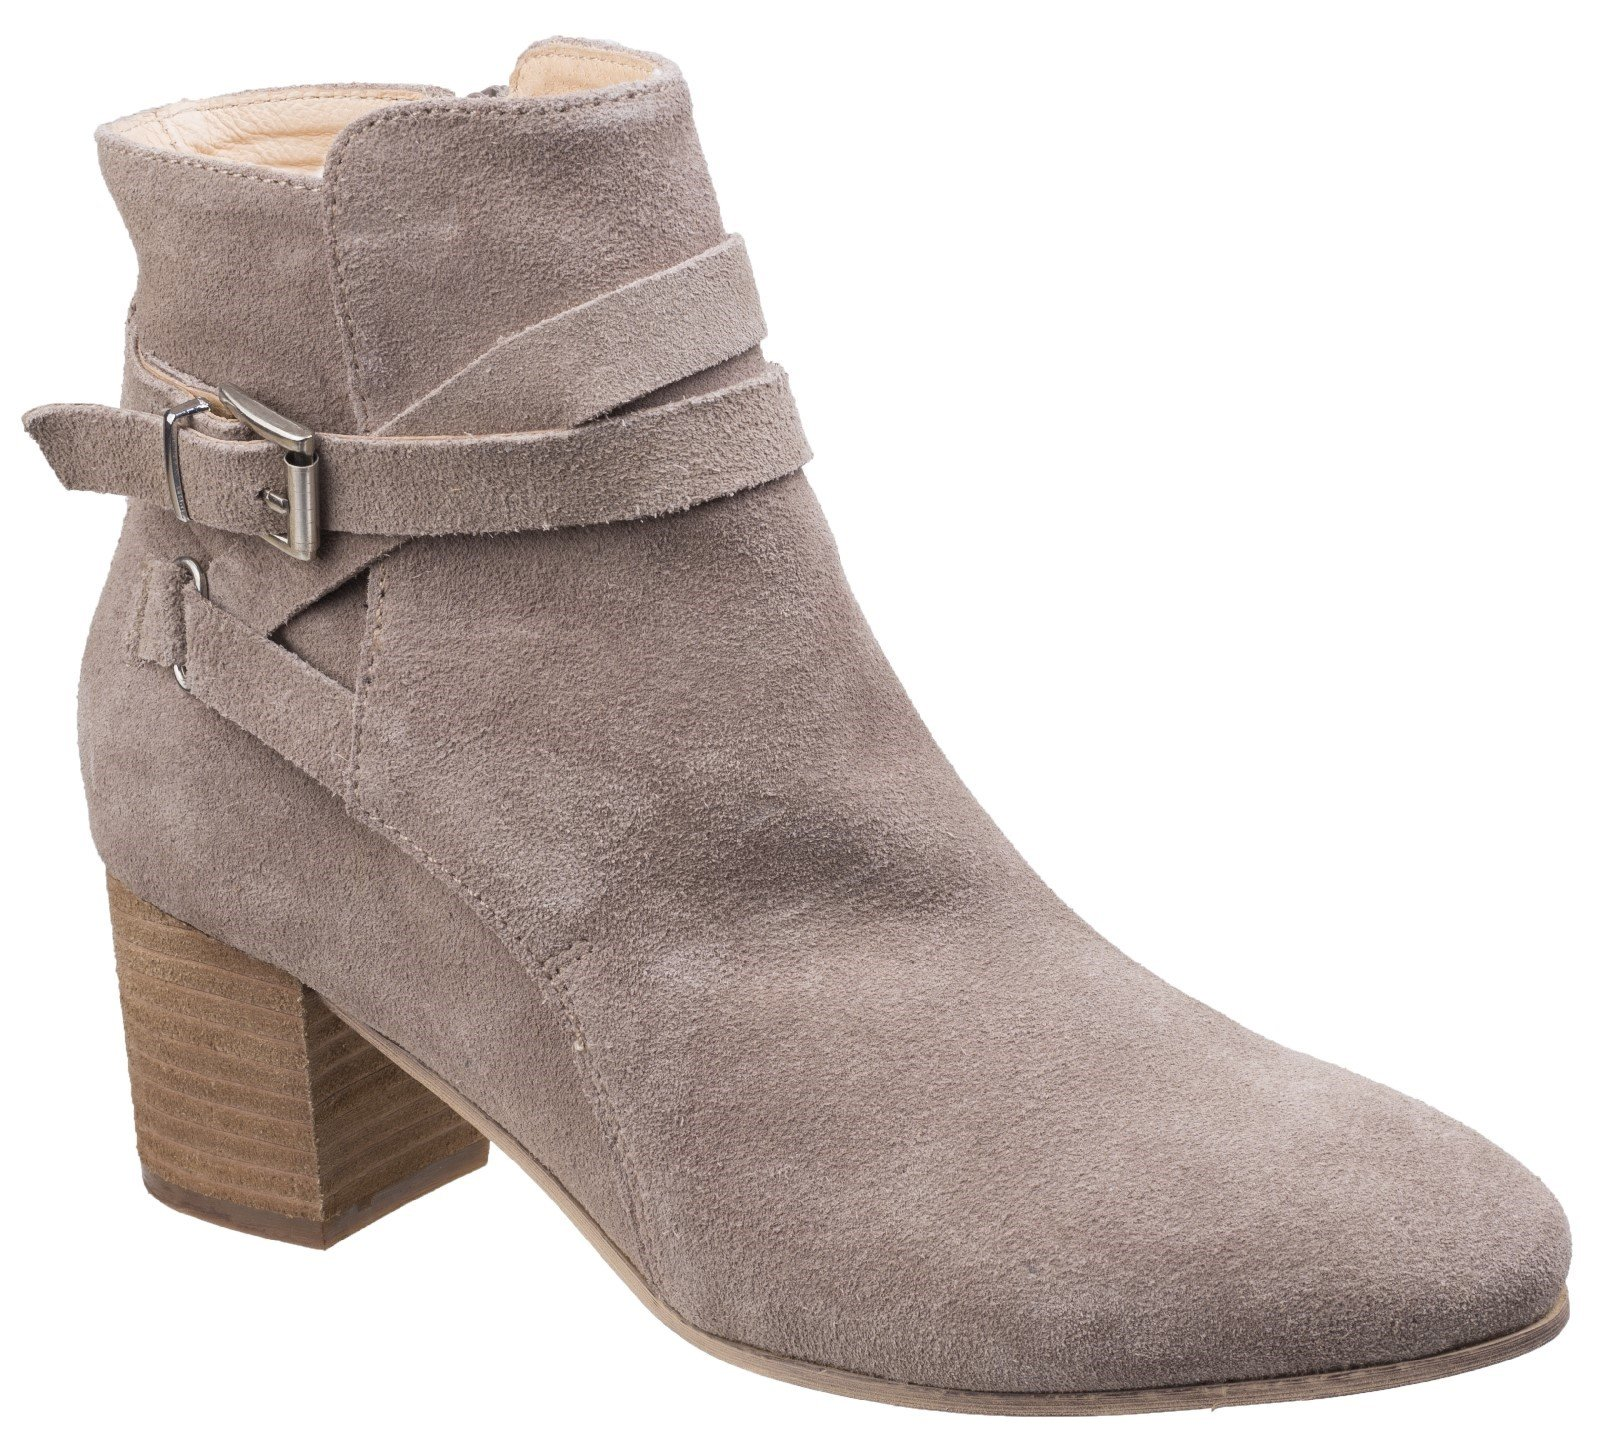 Divaz Women's Arianna Ankle Boot Brown 26322-43943 - Taupe 3